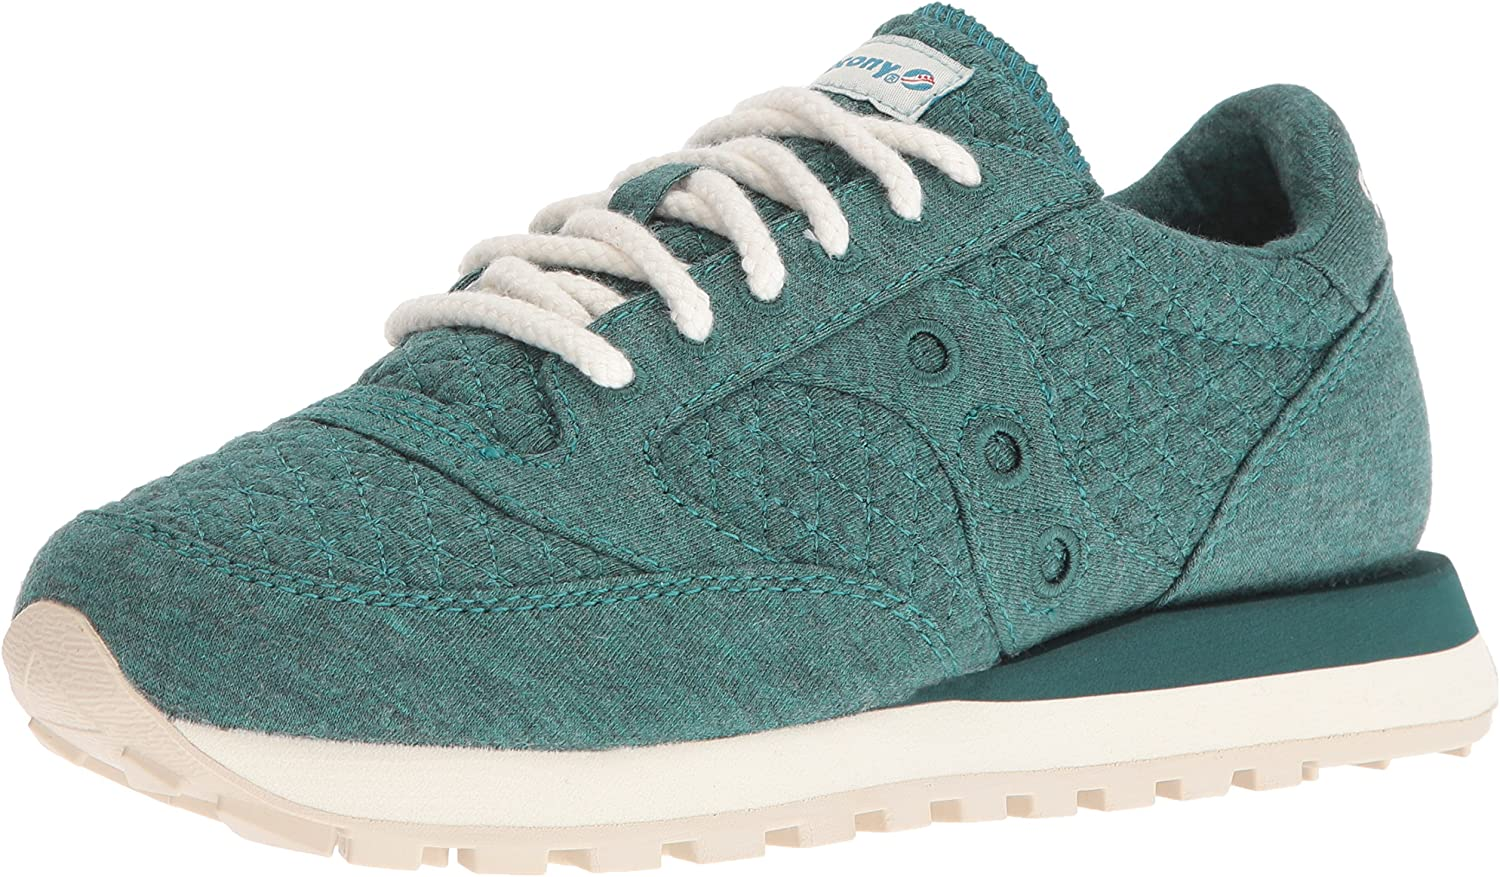 Saucony Originals Women's Jazz Original Sneakers